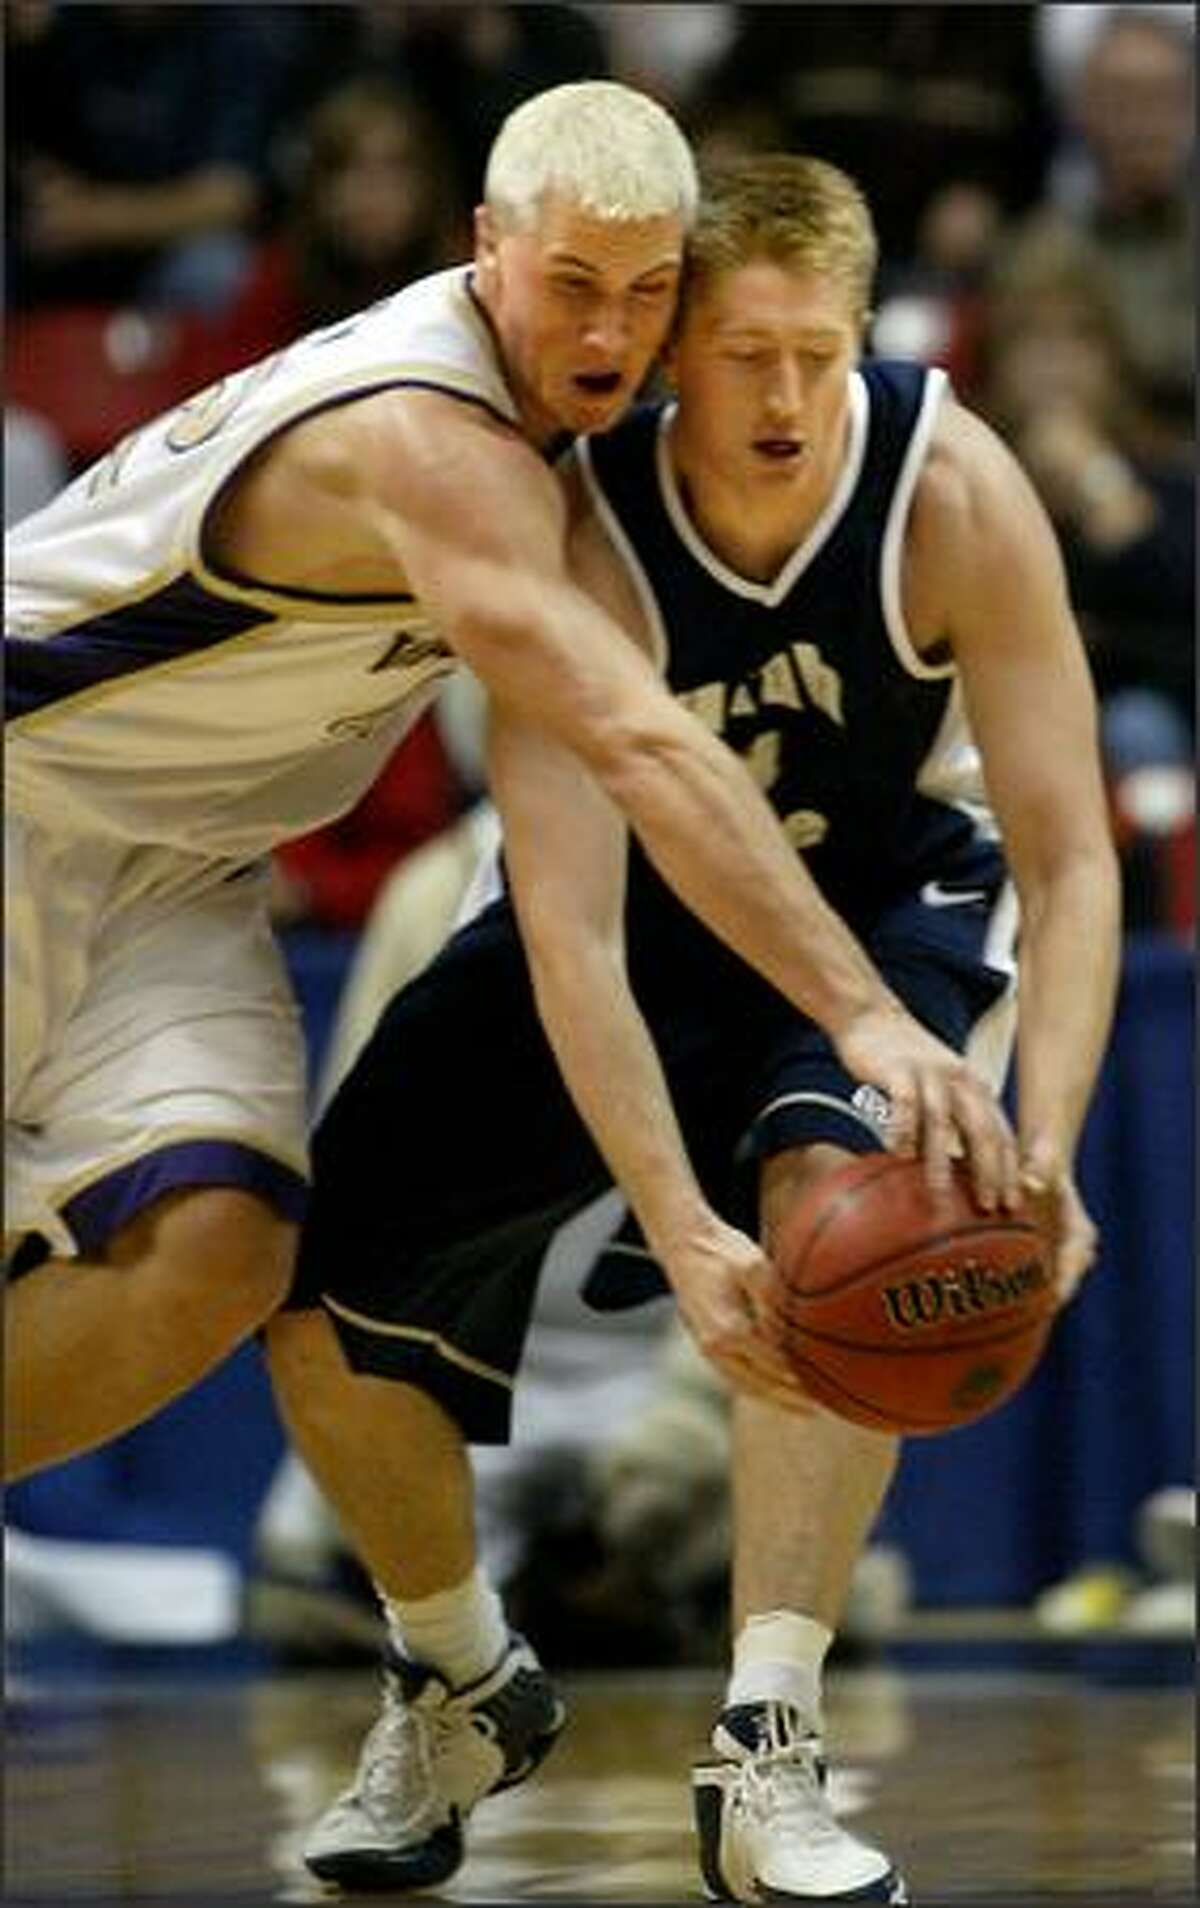 UW forward Mike Jensen (left) applies pressure on Utah State's Nate Harris while going after the ball.